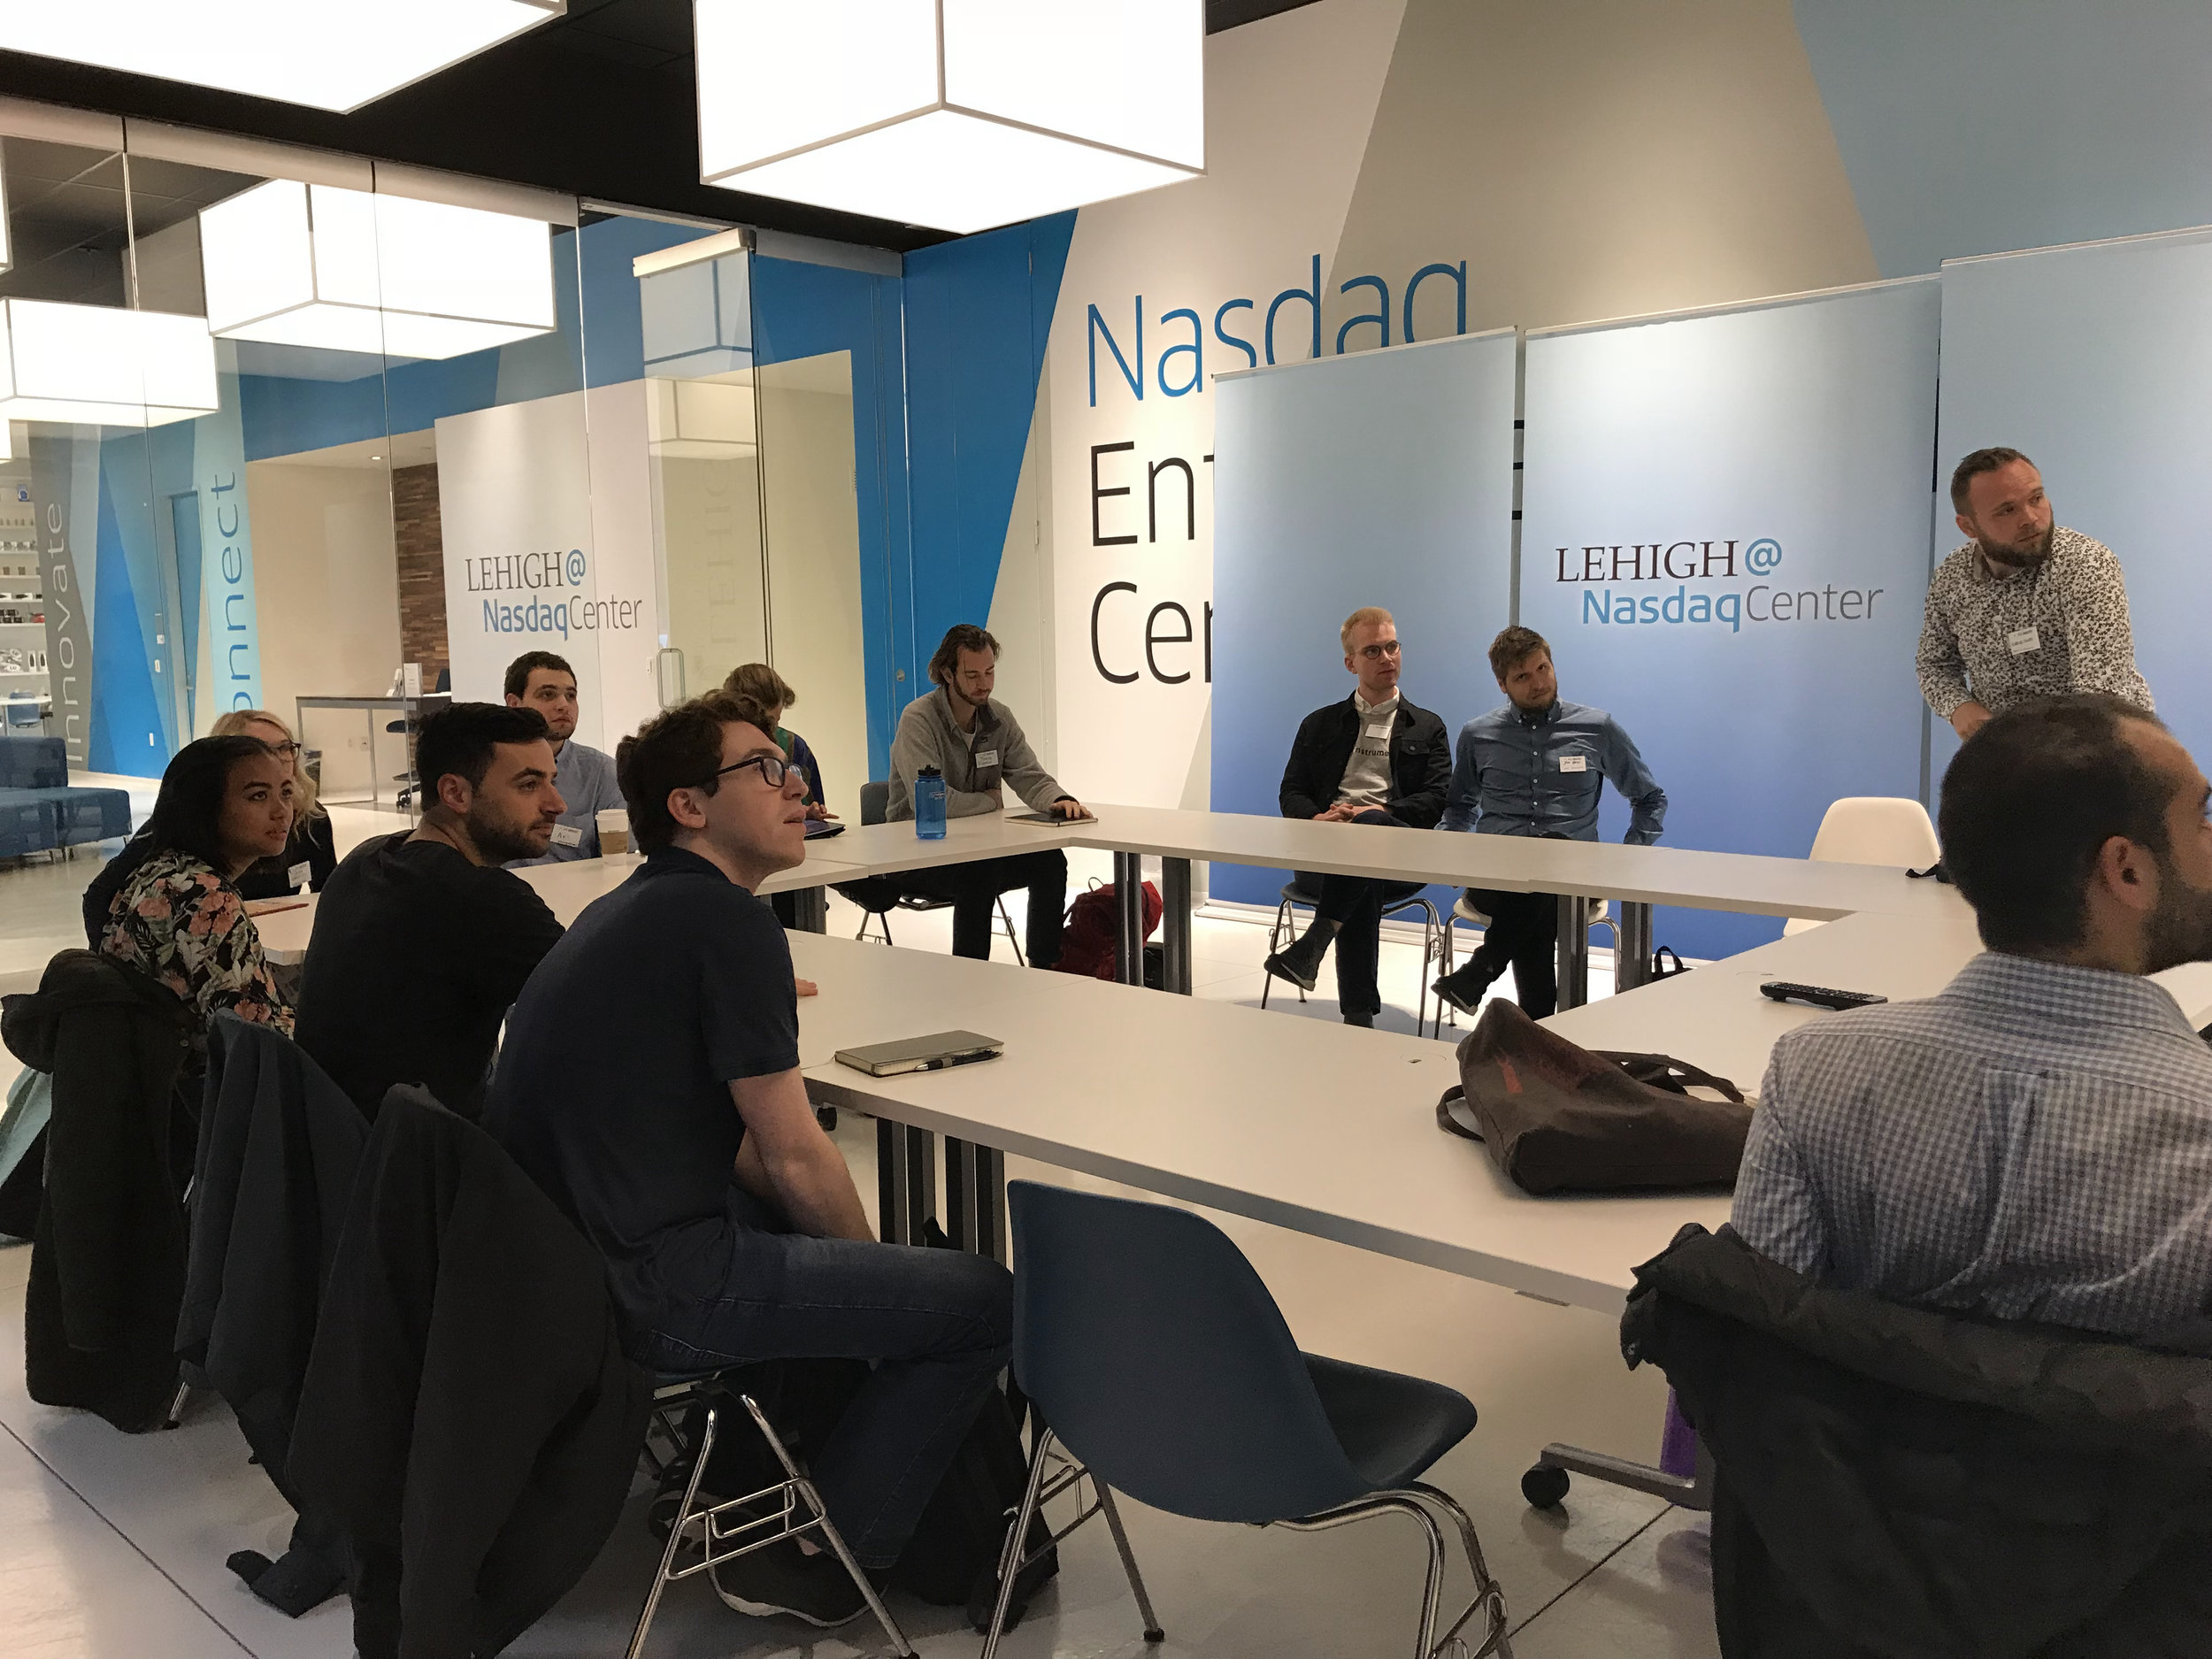 Day 2 - Nasdaq Entrepreneurial Center and EventbriteMilestones Makers Program; Industry Insights with Marty Ringlein, Mentor Meetings